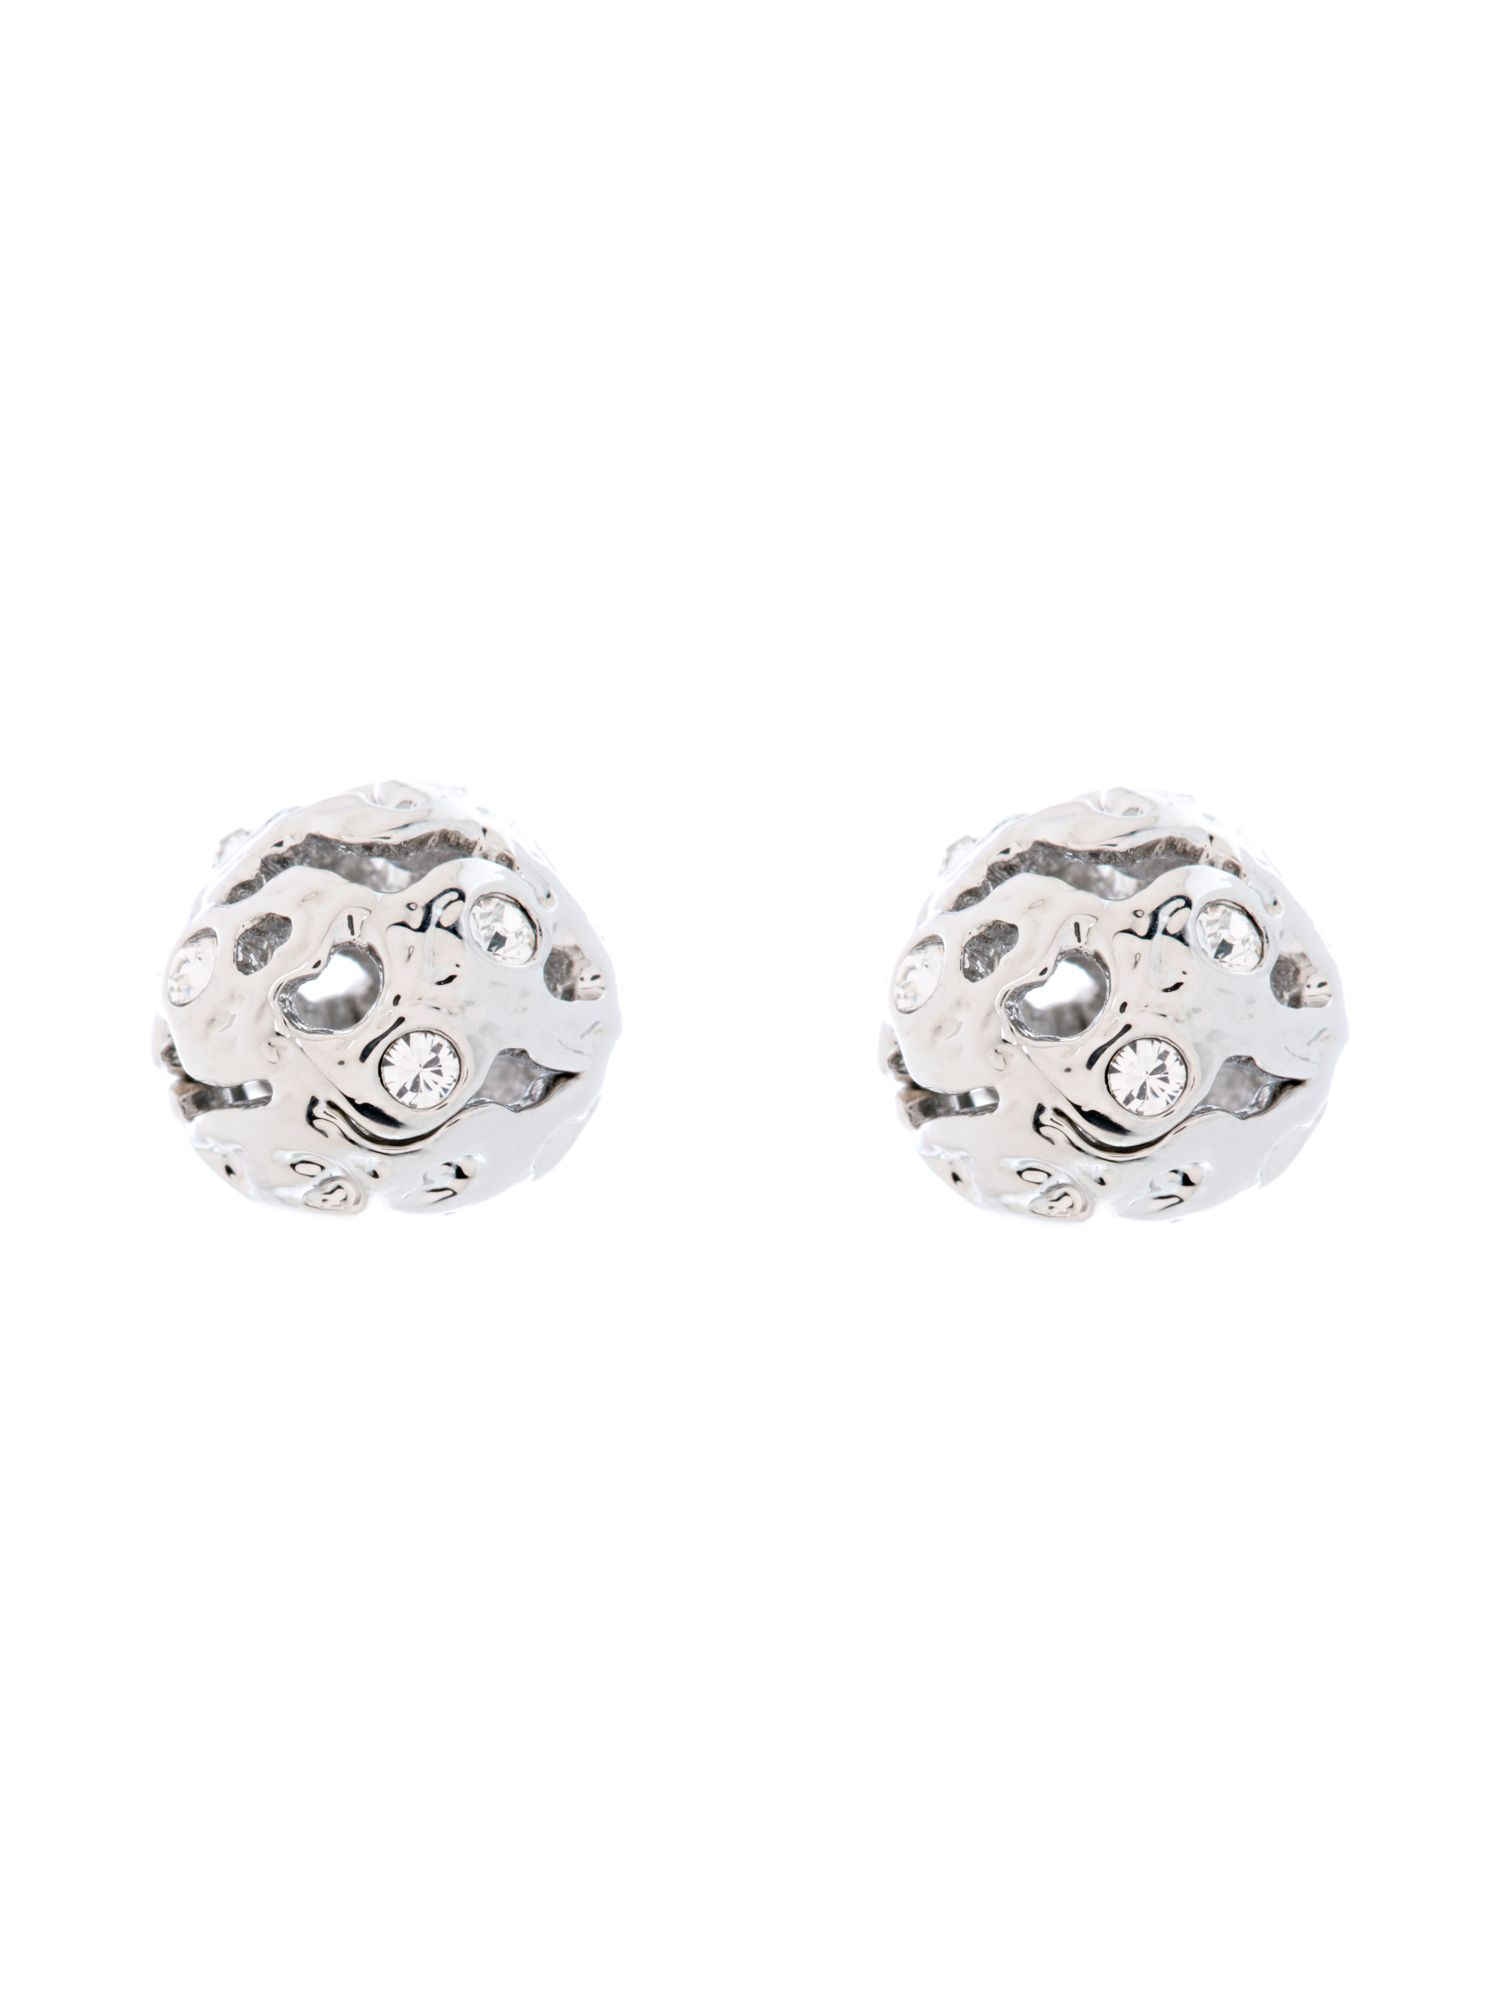 Frosted stud earrings